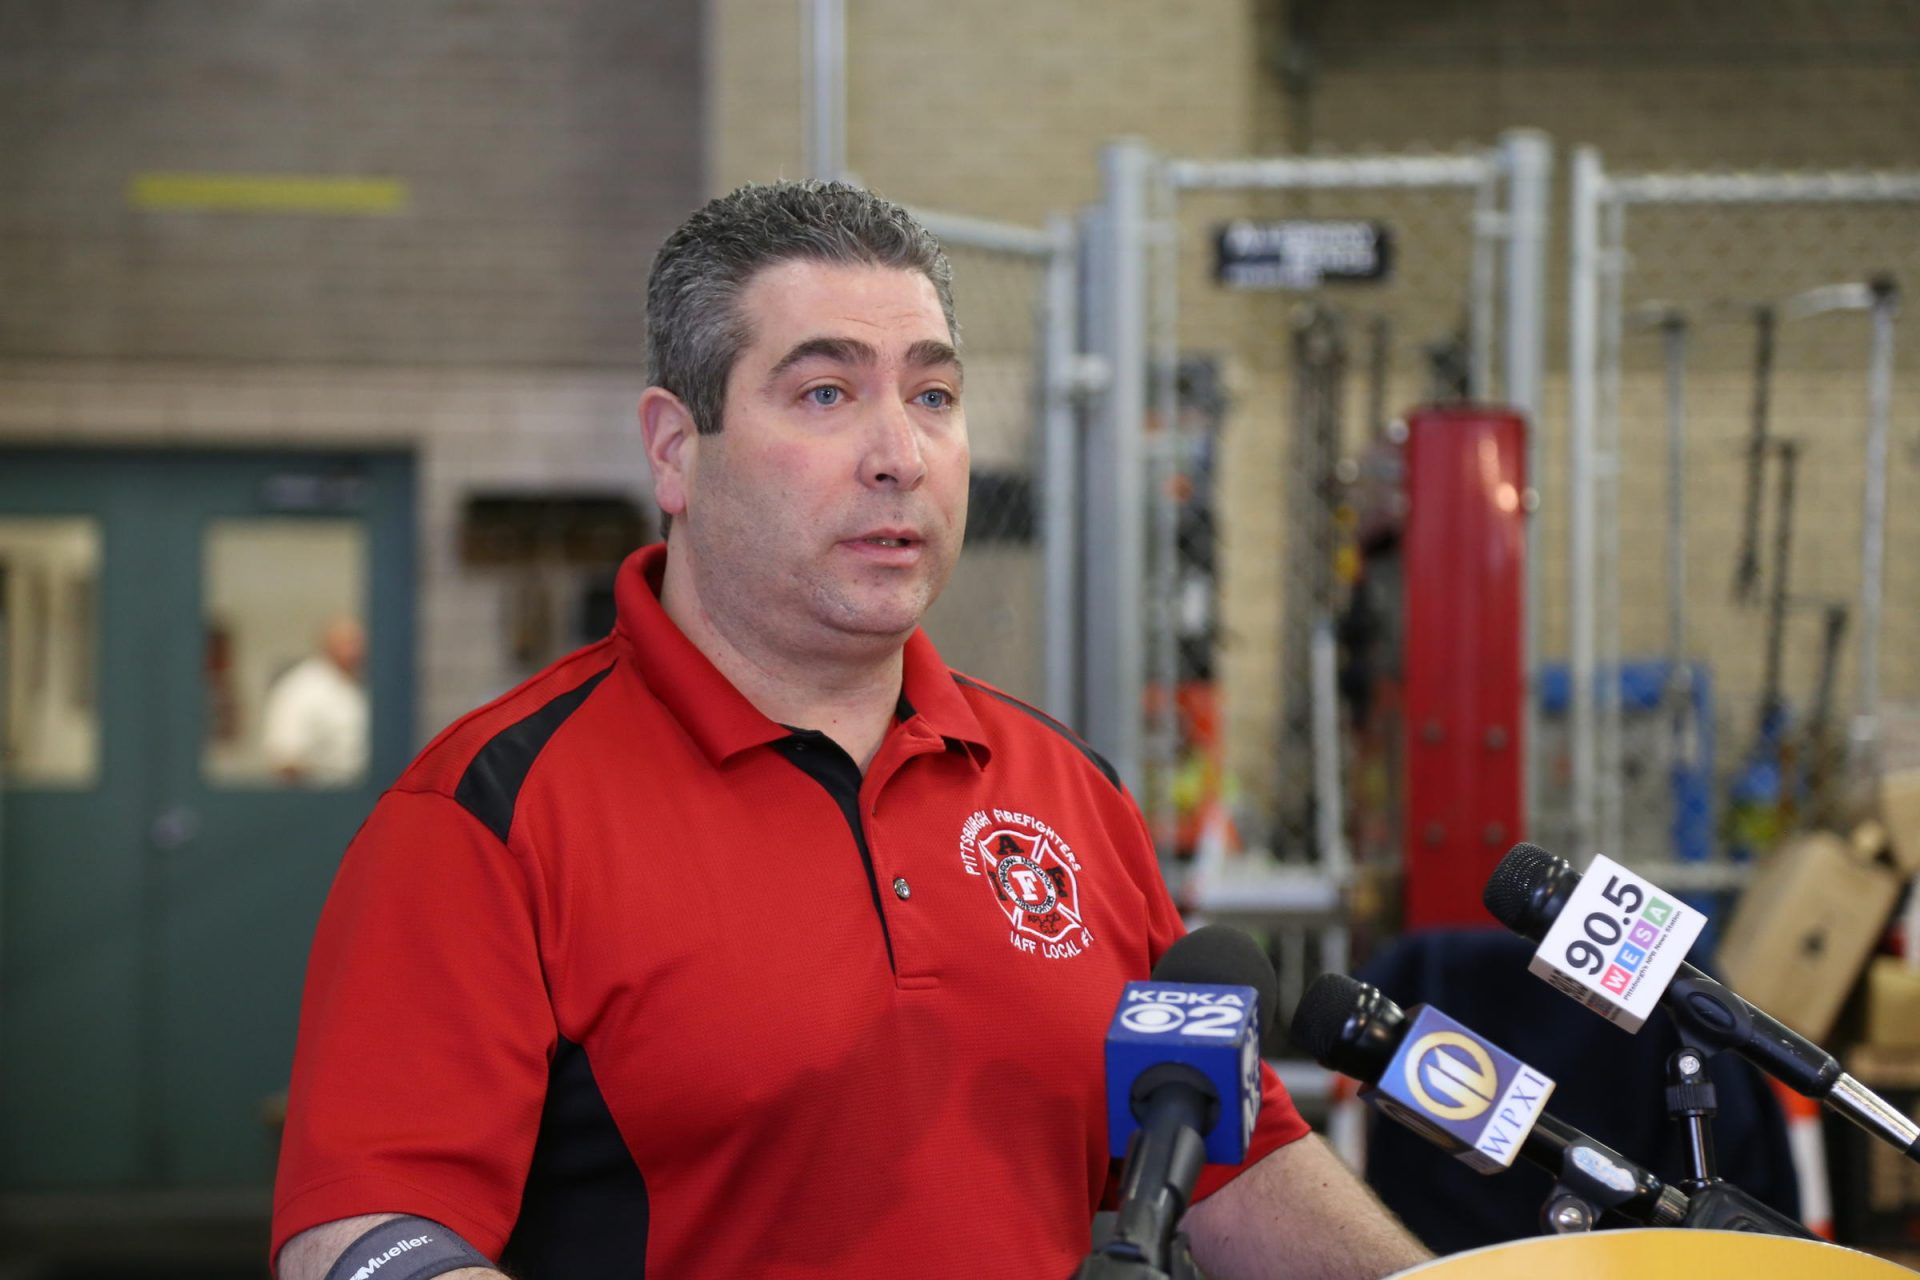 Ralph Sicuro, the president of Pittsburgh Firefighters Local No. 1, speaks at a press conference at the fire training facilities on March 28, 2017.